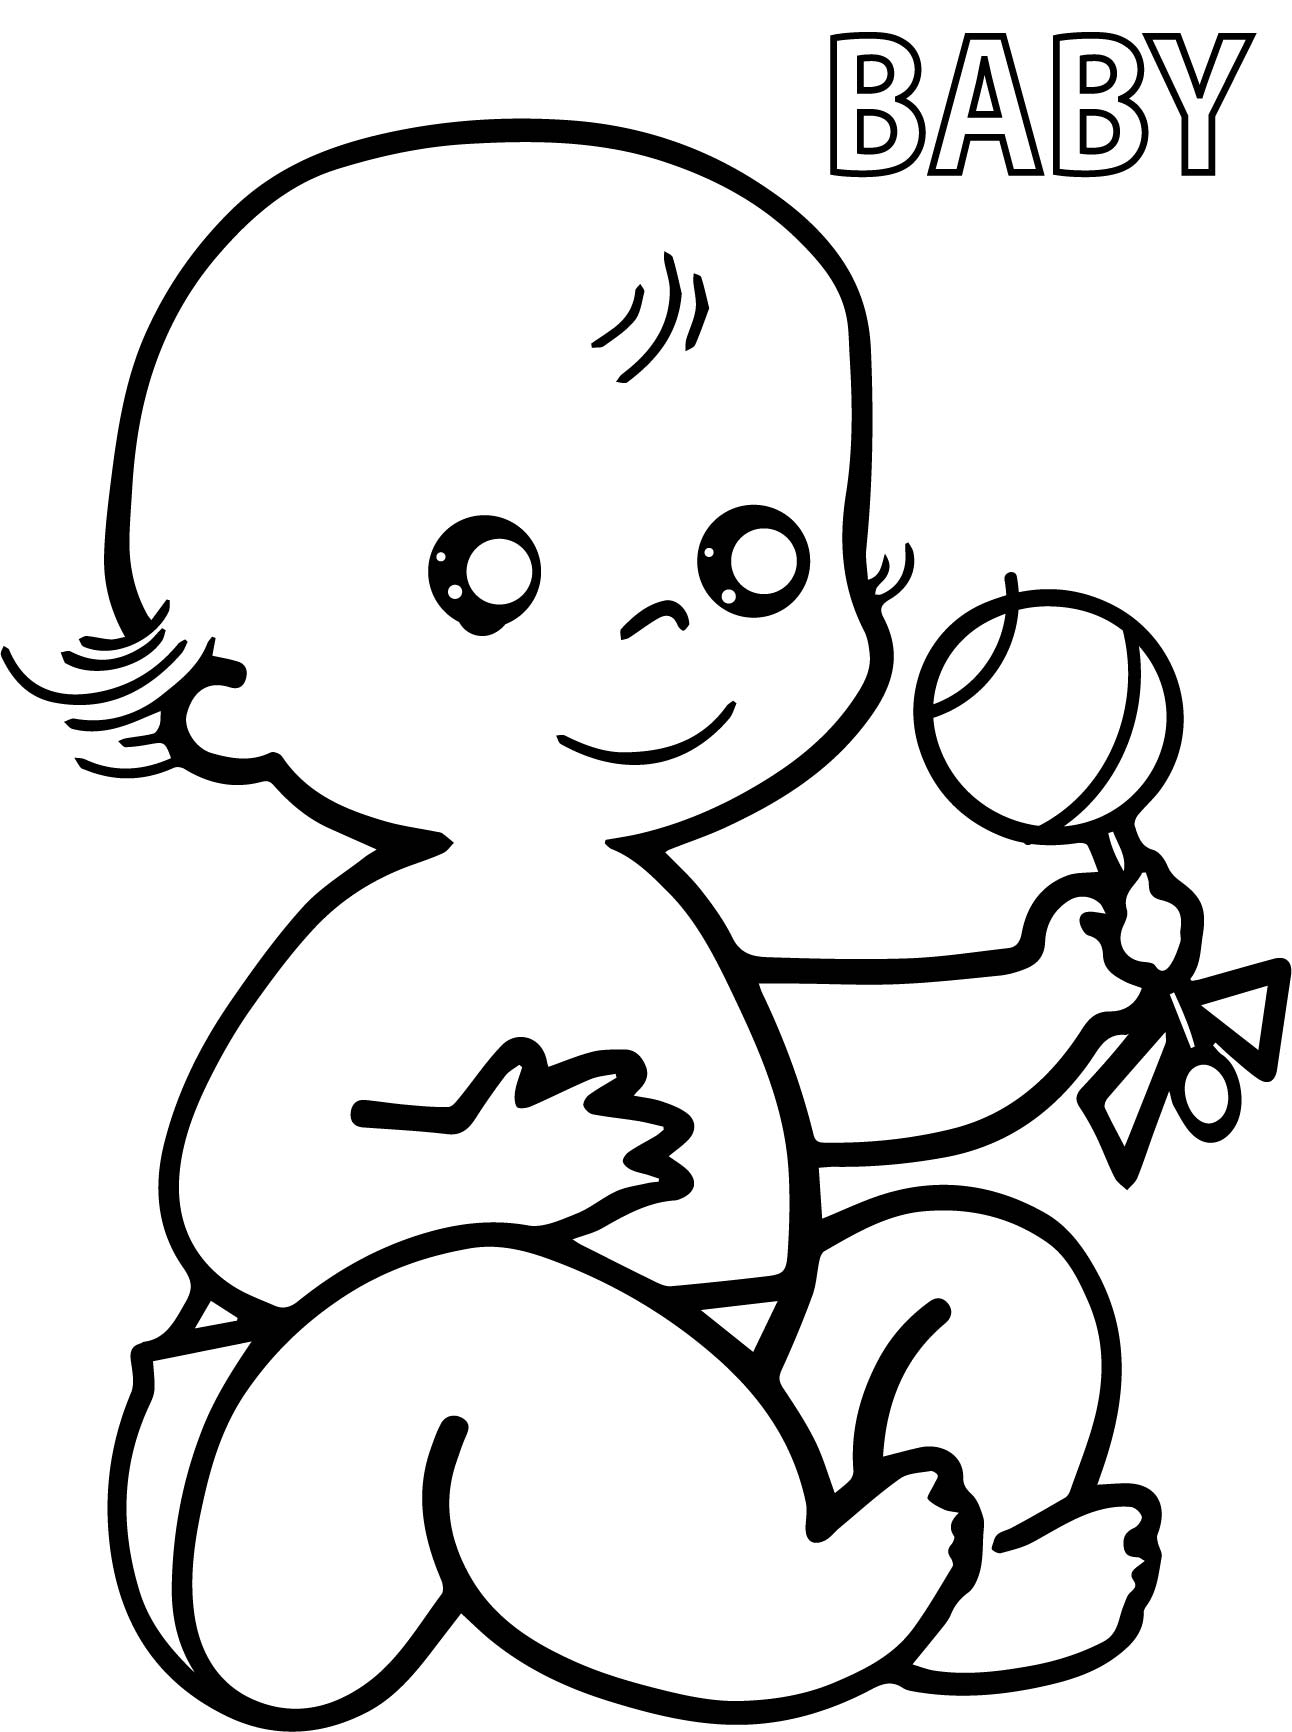 Precious Moments Baby Girl Coloring Pages At Getdrawings